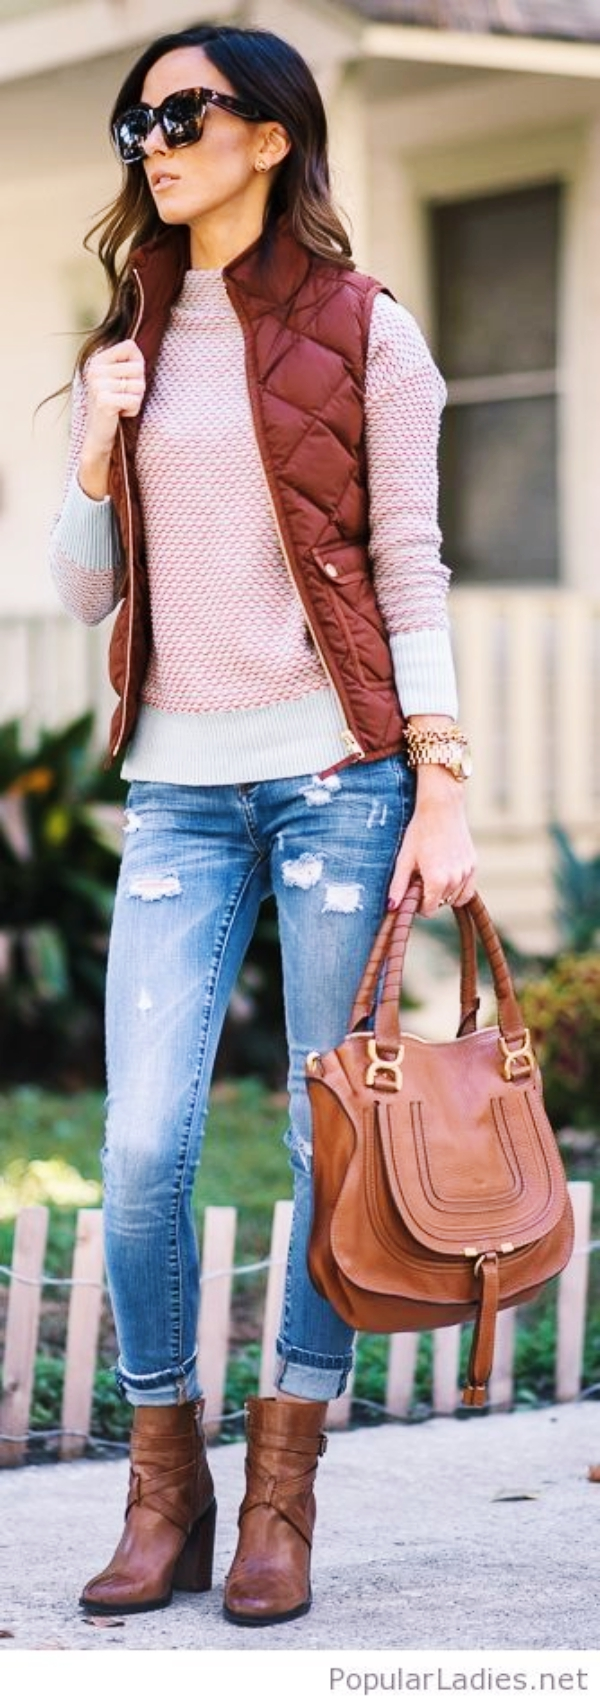 Light-on-Light-Outfit-Combinations